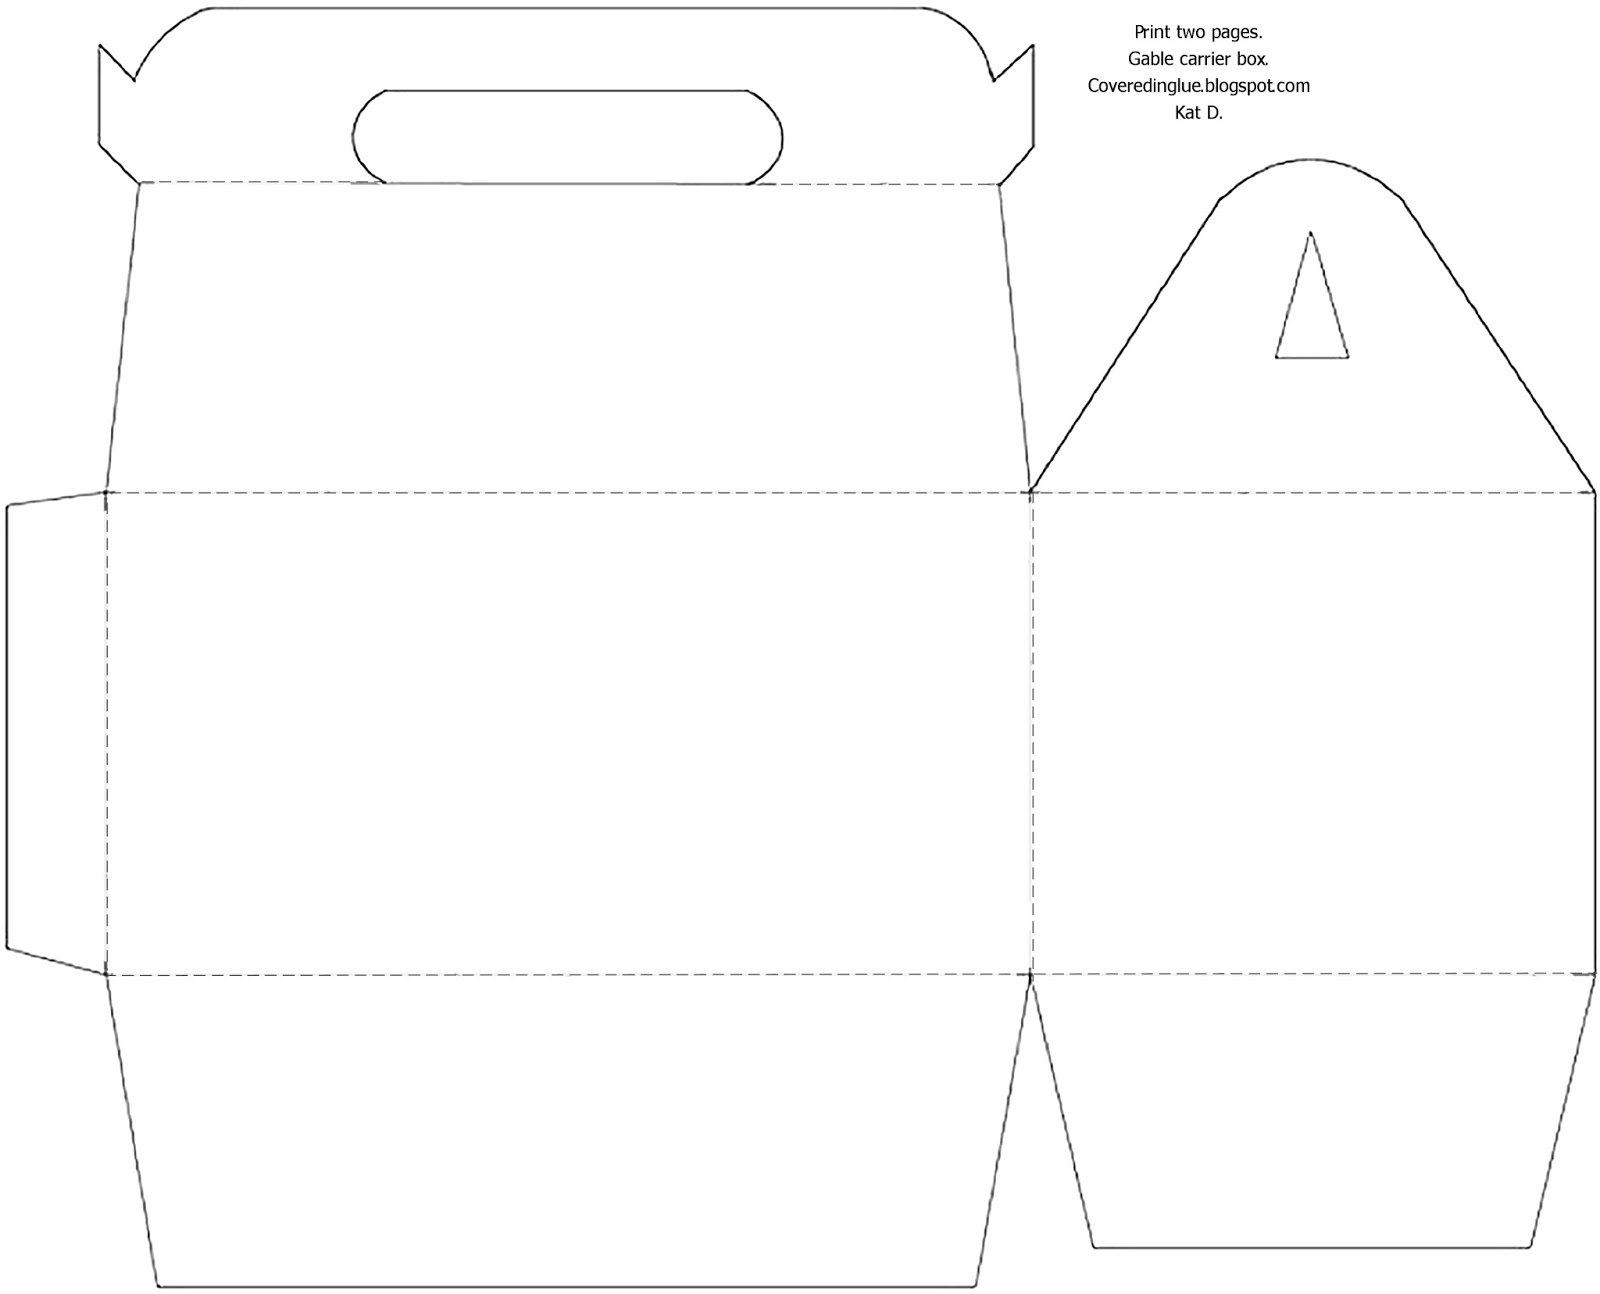 Acura Lease Deals >> Gable Gift Box Template - Gift Ftempo